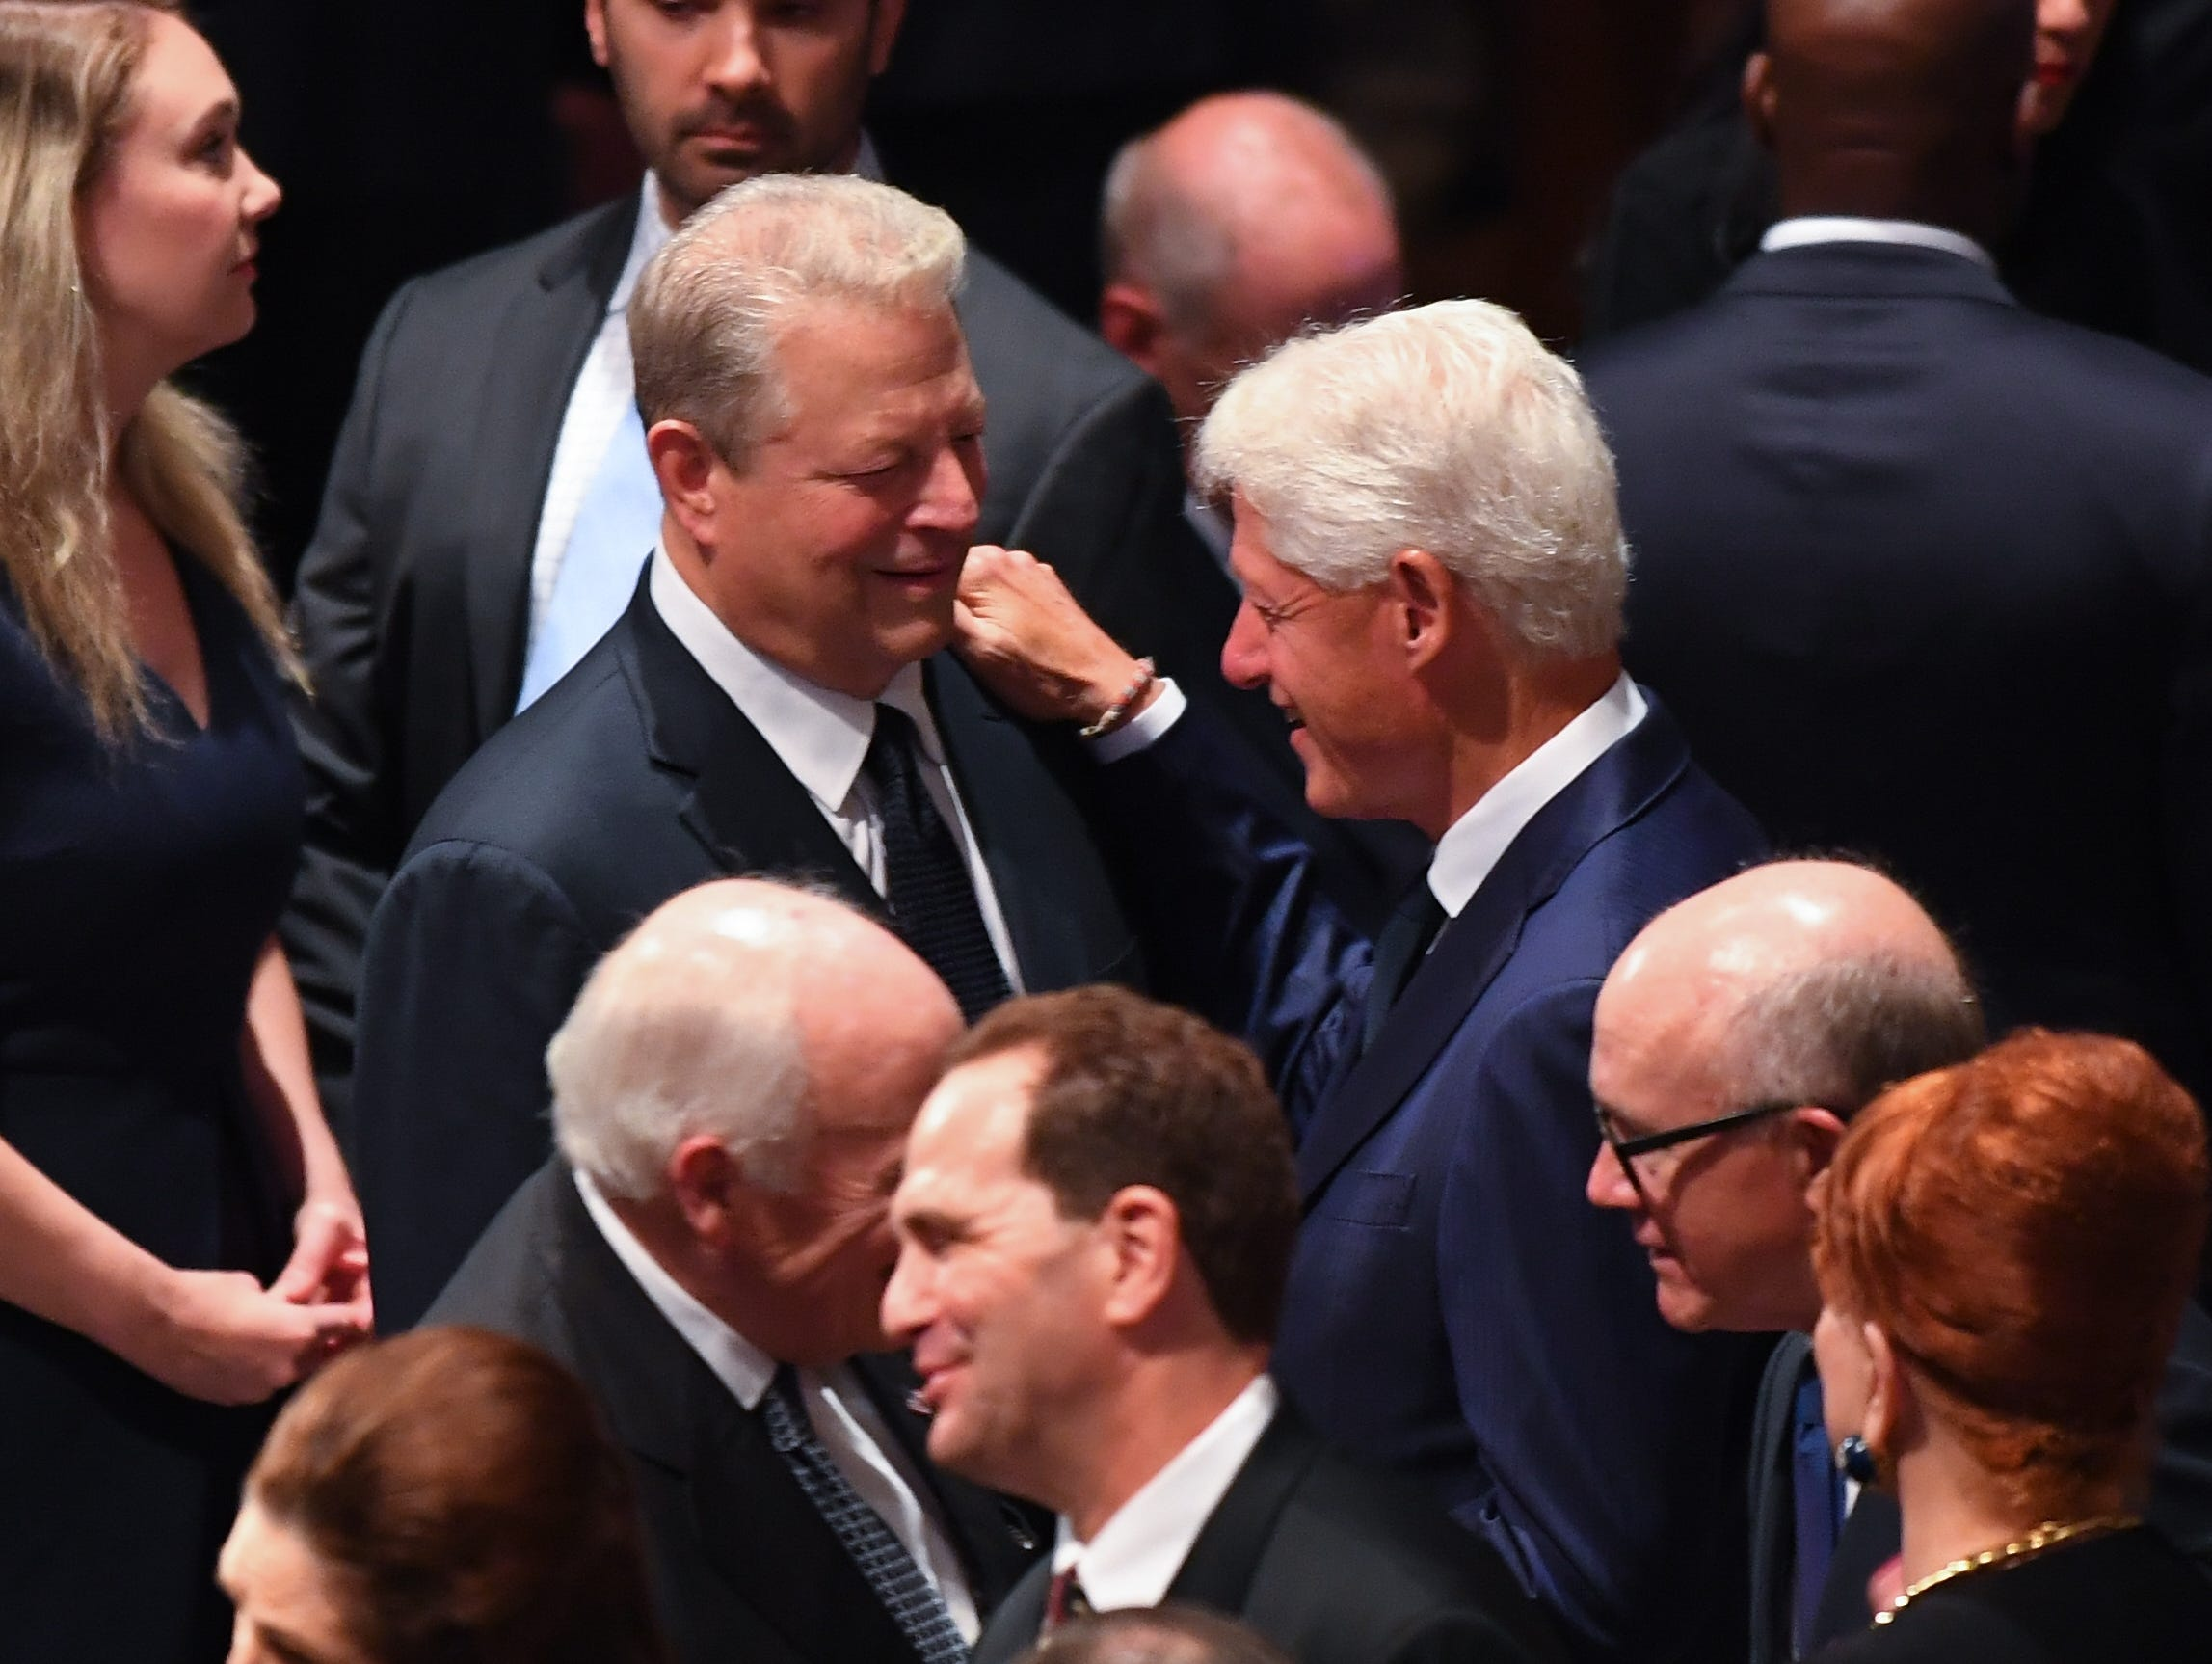 Former President Bill Clinton greets his former Vice President Al Gore at the memorial service for John McCain.